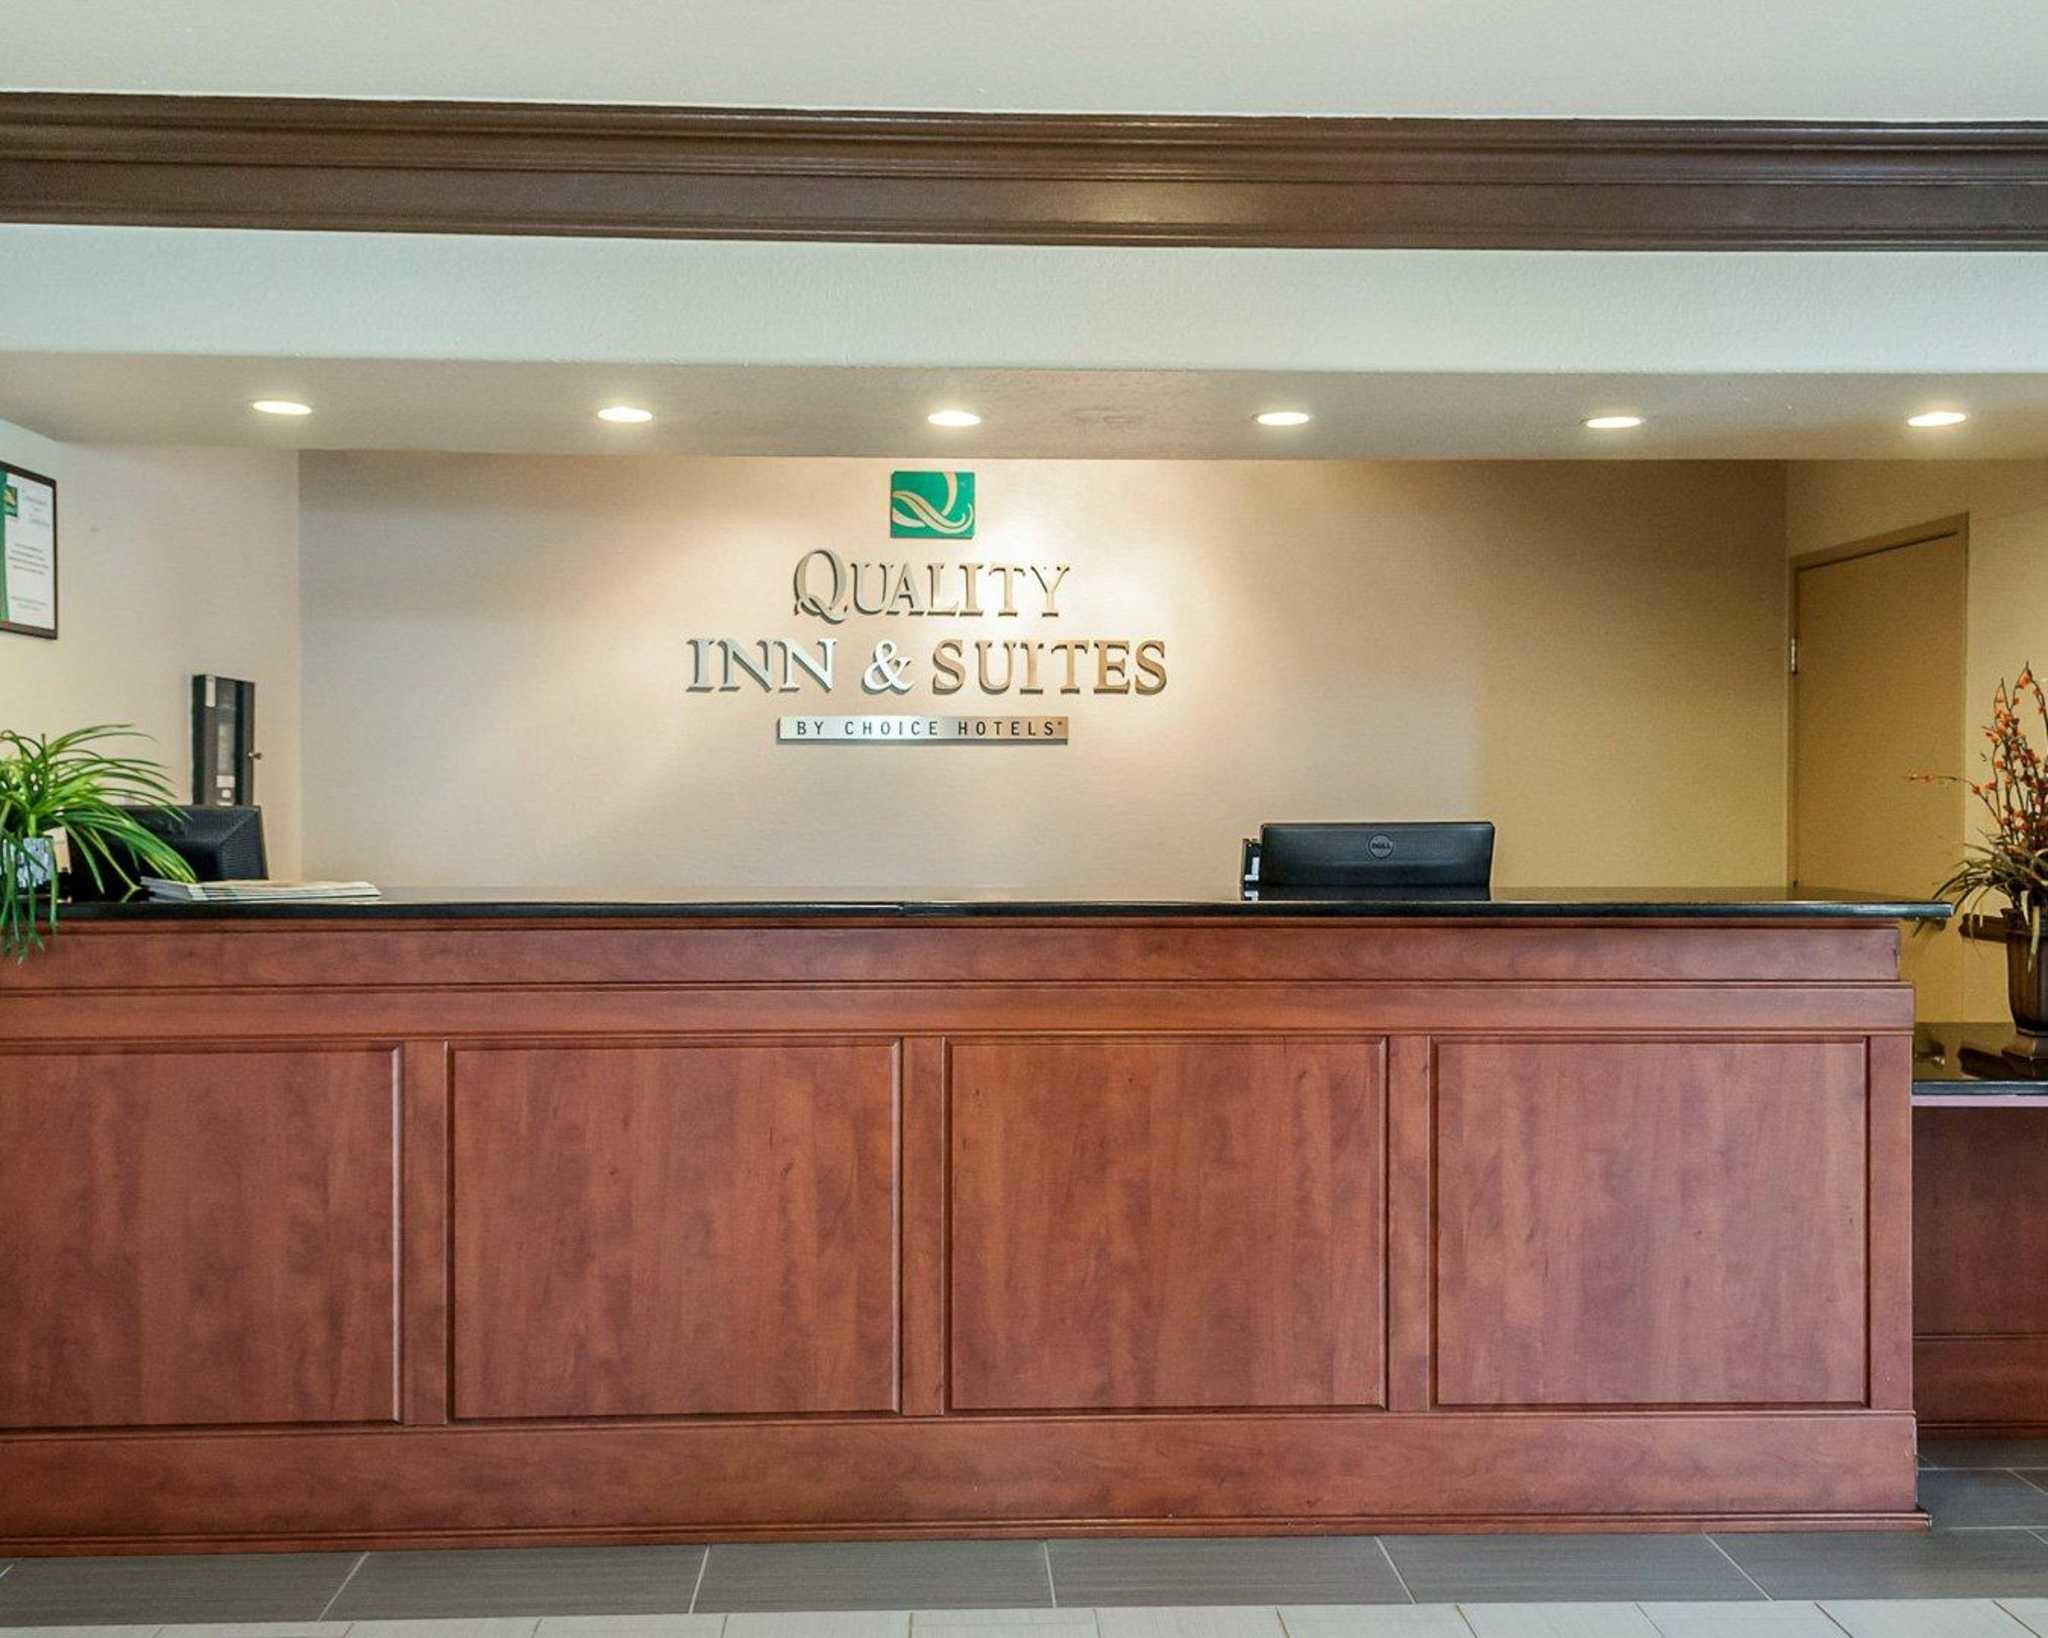 Quality Inn & Suites image 8